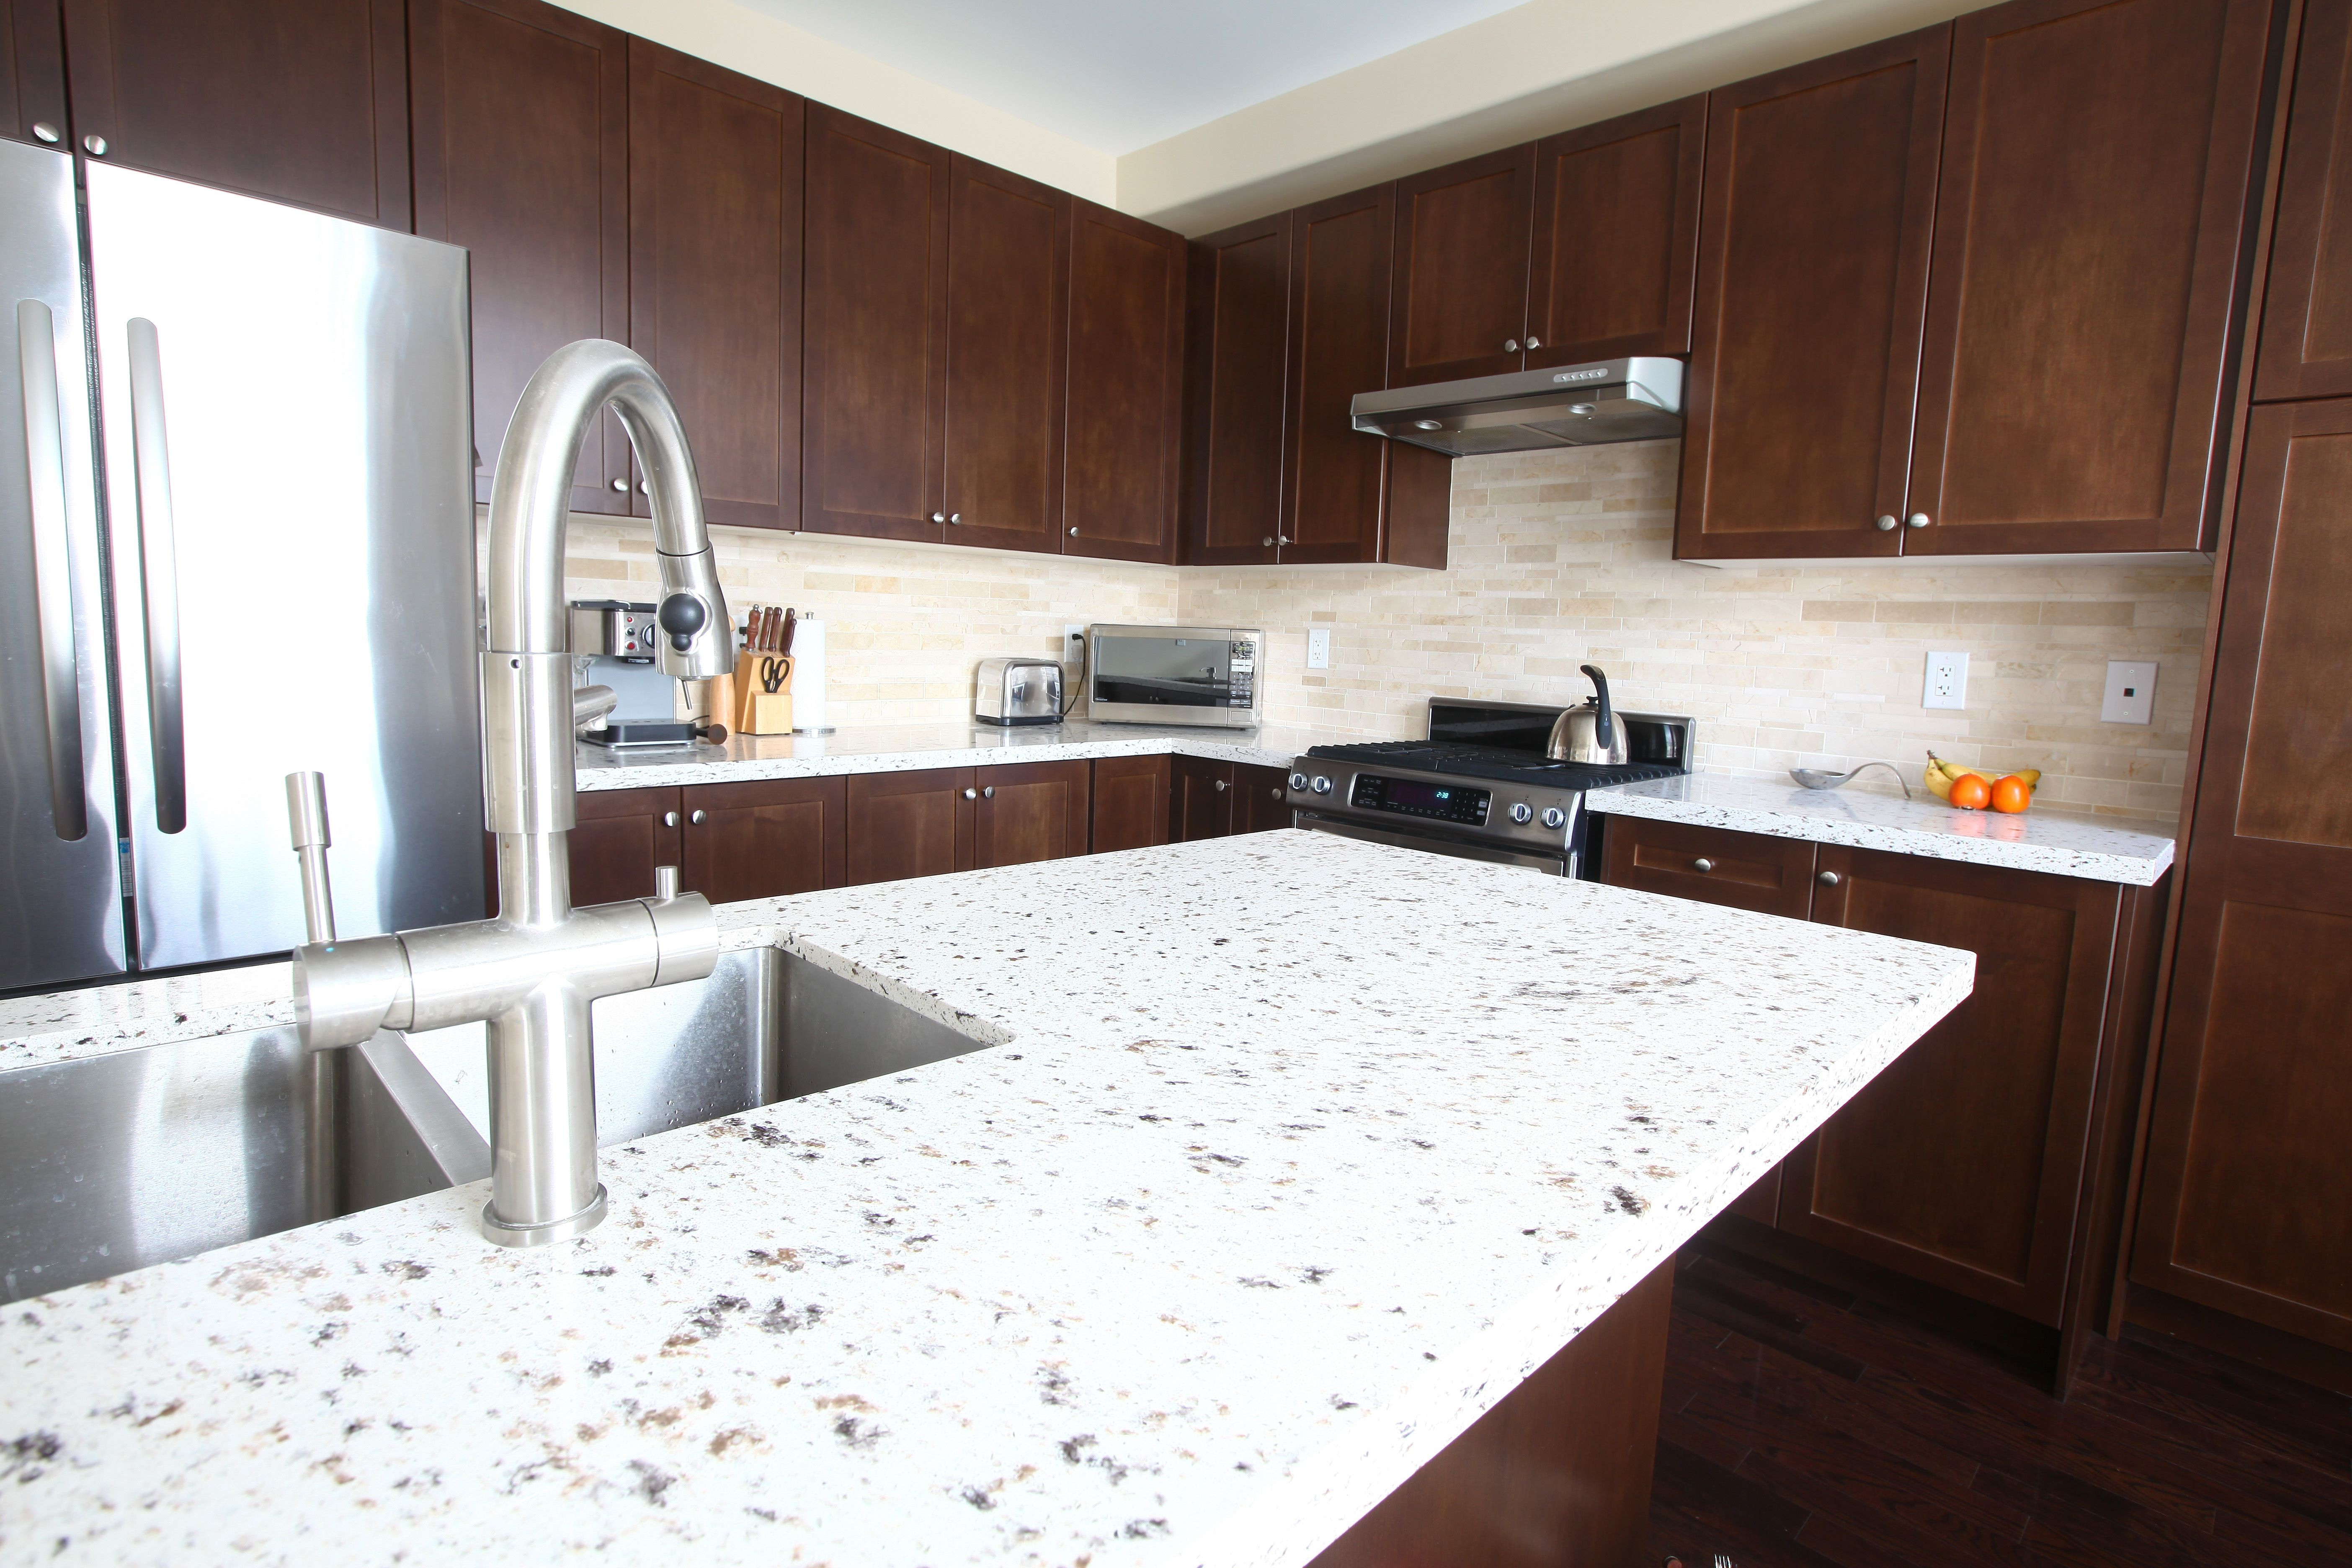 hardwood floors in kitchen pros and cons of alluring marble kitchen countertops pros and cons painted kitchen inside gallery of alluring marble kitchen countertops pros and cons